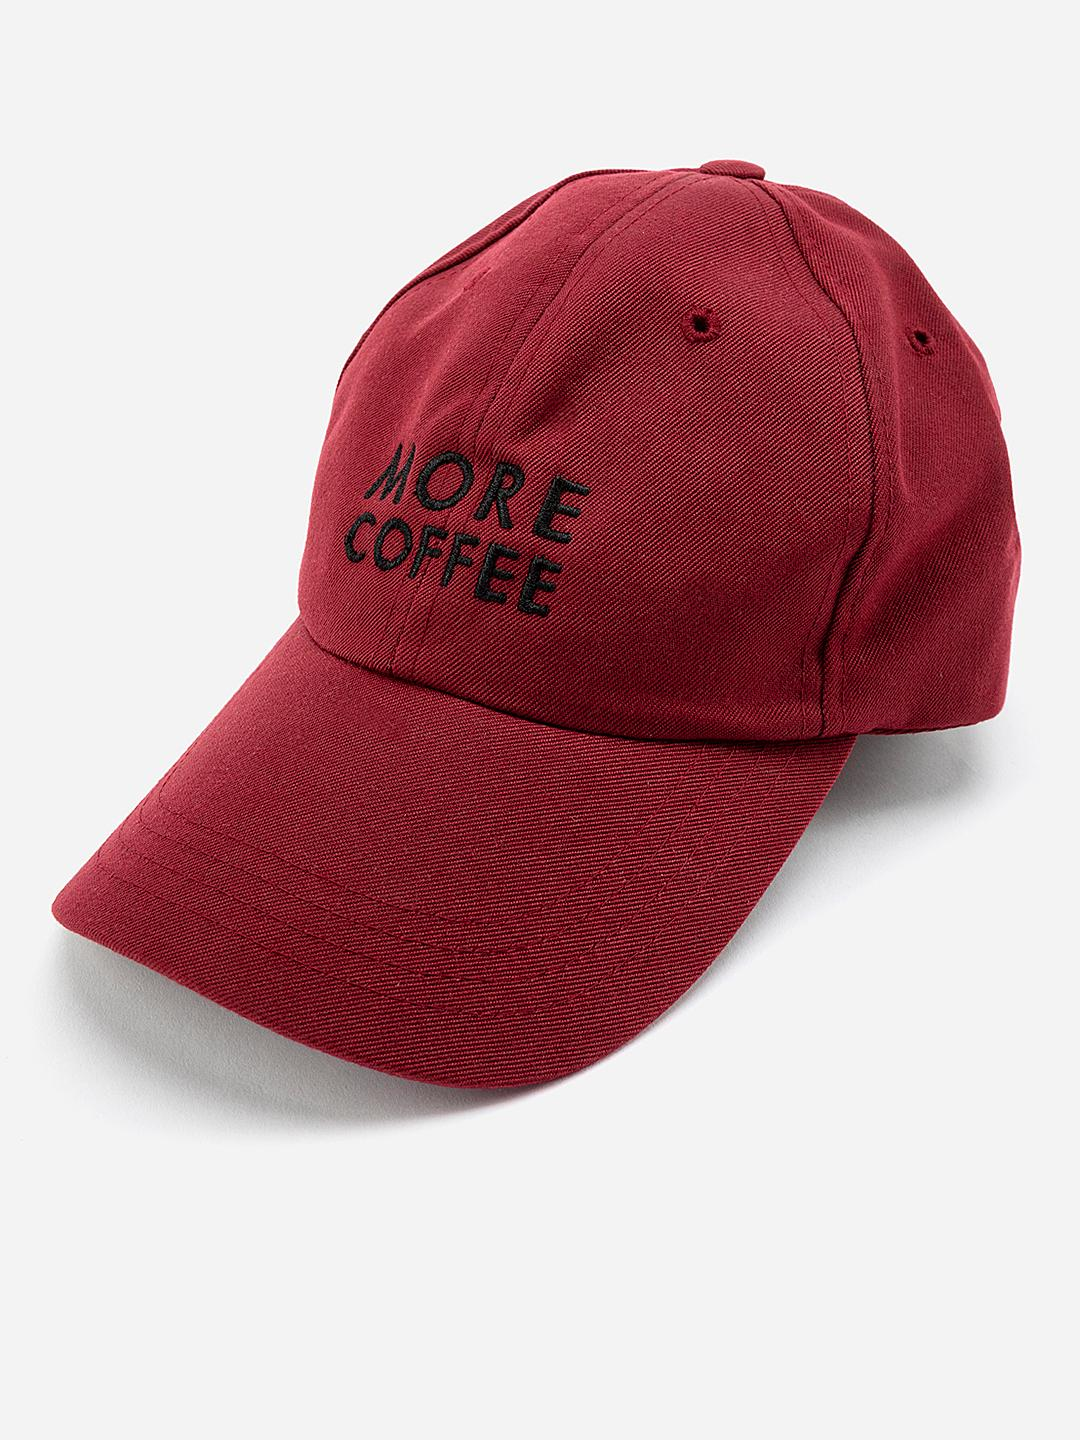 Lazy Panda Maroon More Coffee Embroidered Baseball Cap 1